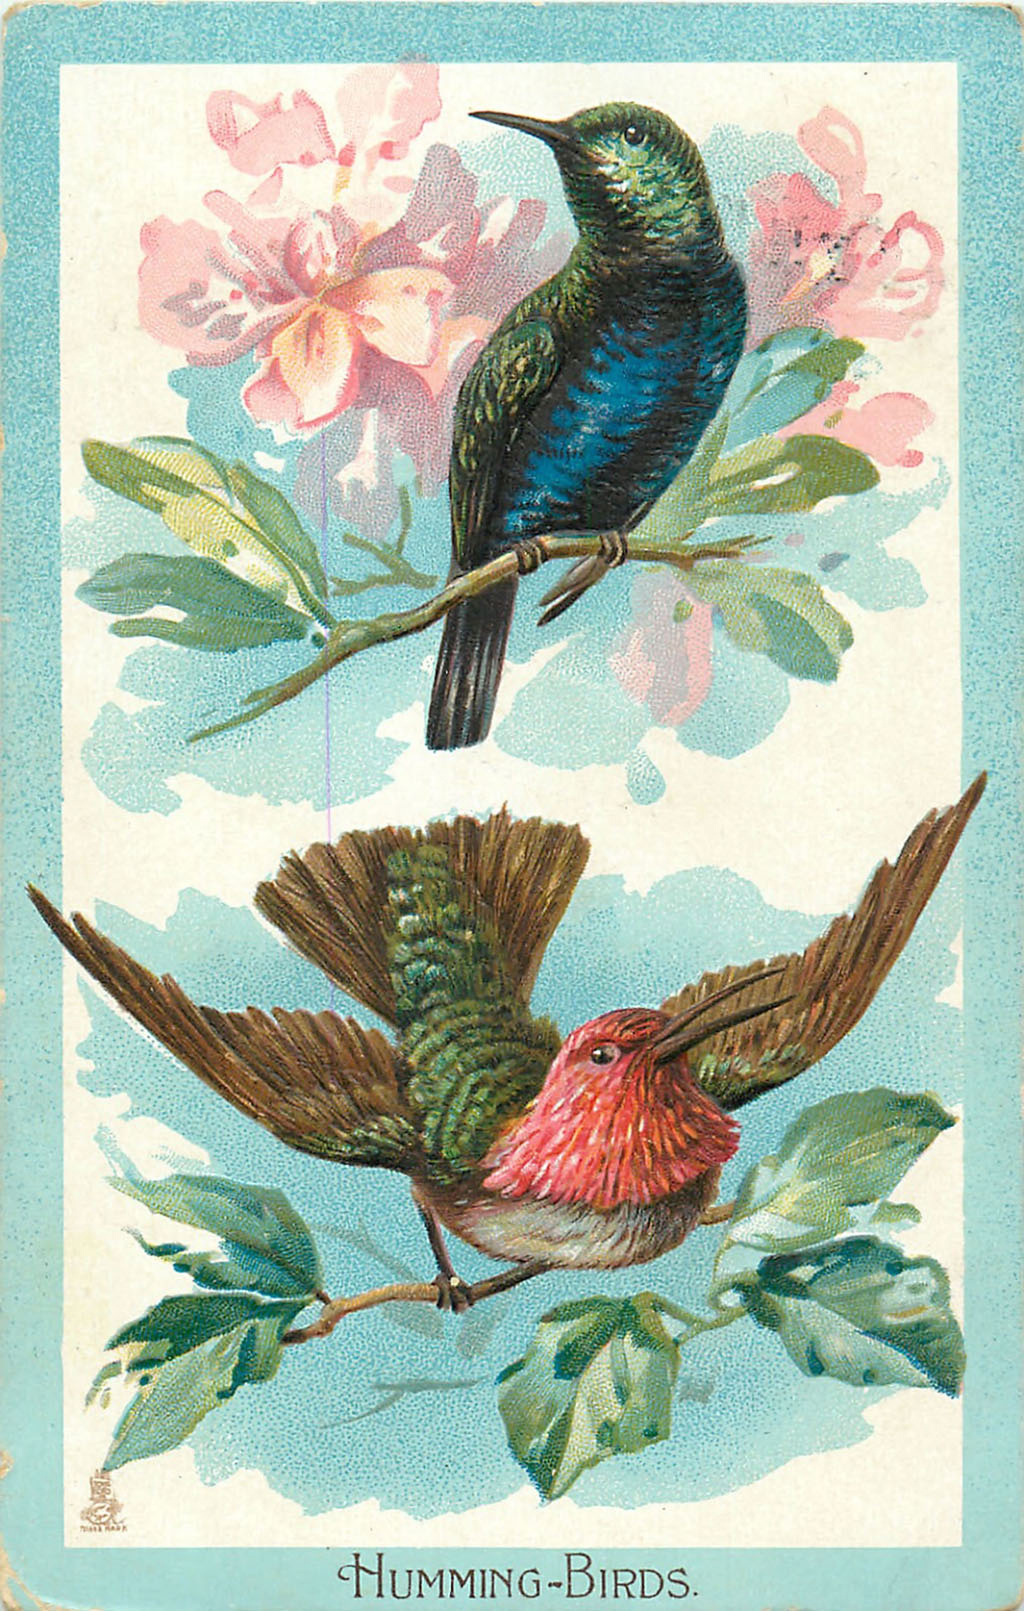 Vintage hummingbird illustrations greeting card the graffical muse vintage greeting card m4hsunfo